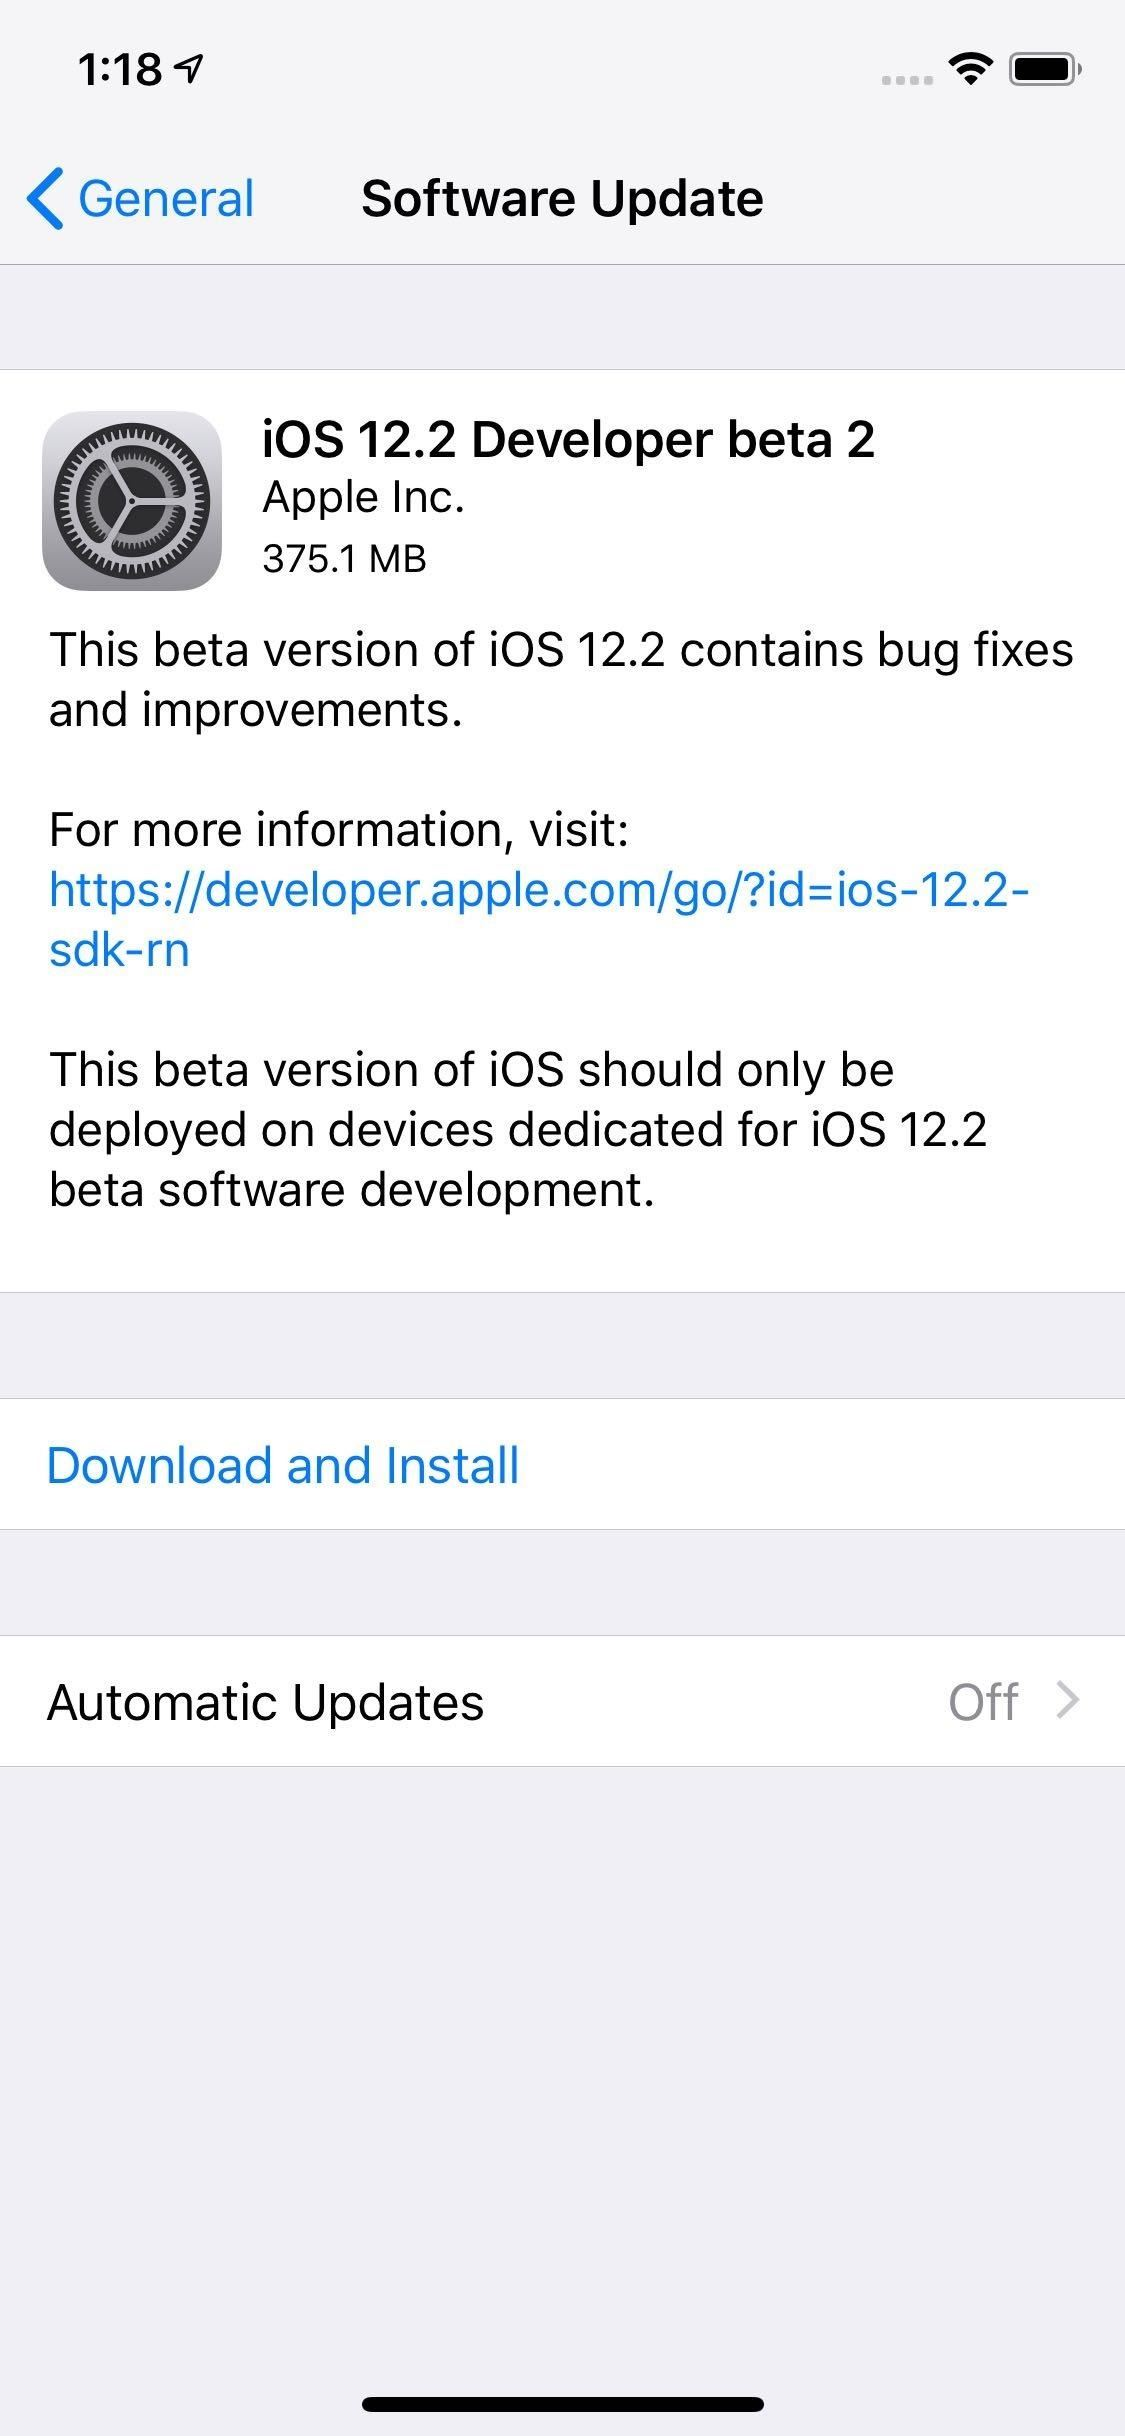 Apple Just Released iOS 12.2 Beta 2 for iPhone to Developers, Includes Four New Animoji